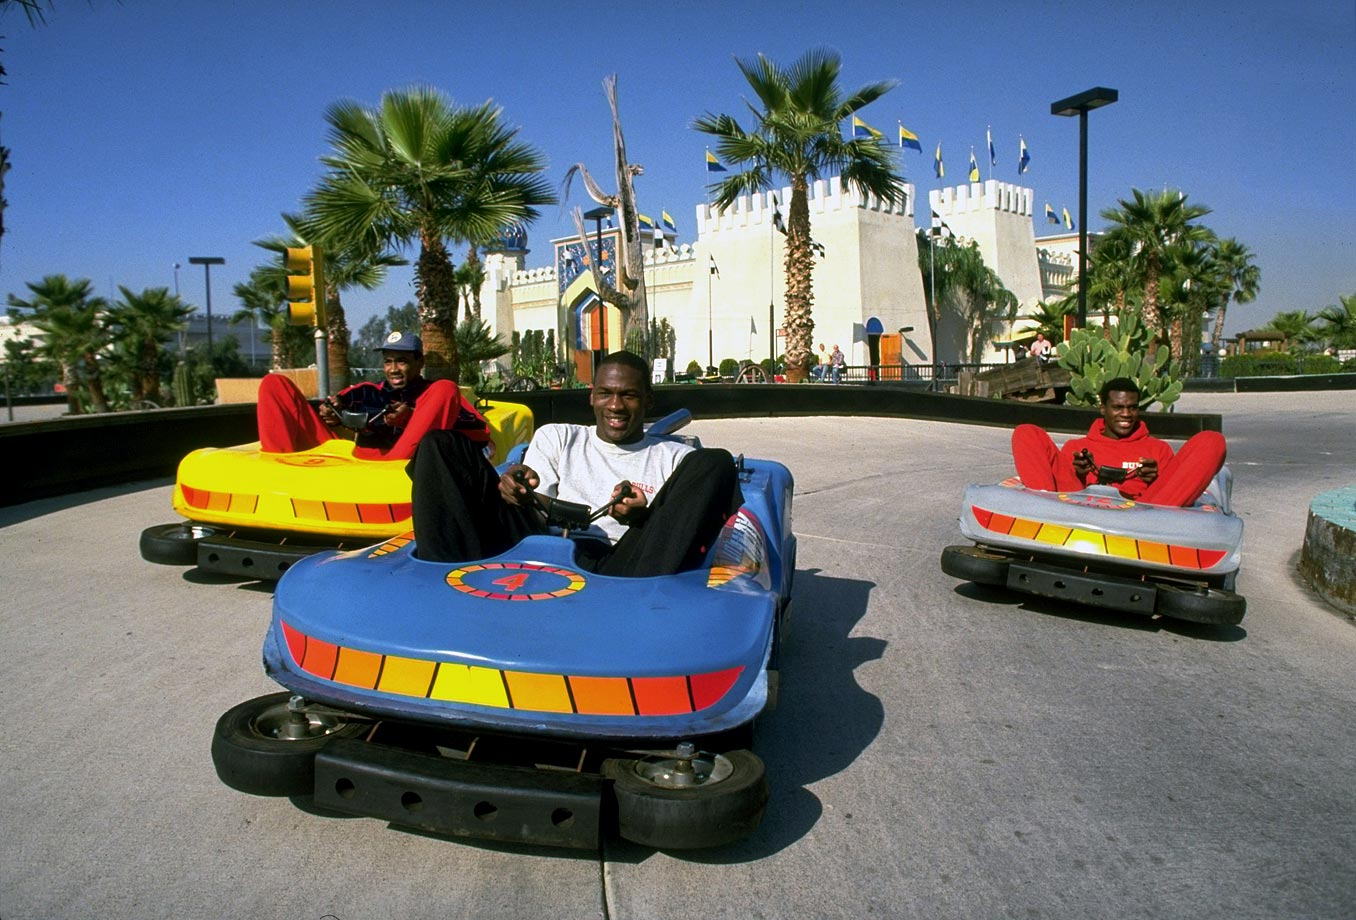 Michael Jordan drives a bumper car against Bulls teammates Rod Higgins and Orlando Woolridge at an amusement park in Phoenix in November 1984.